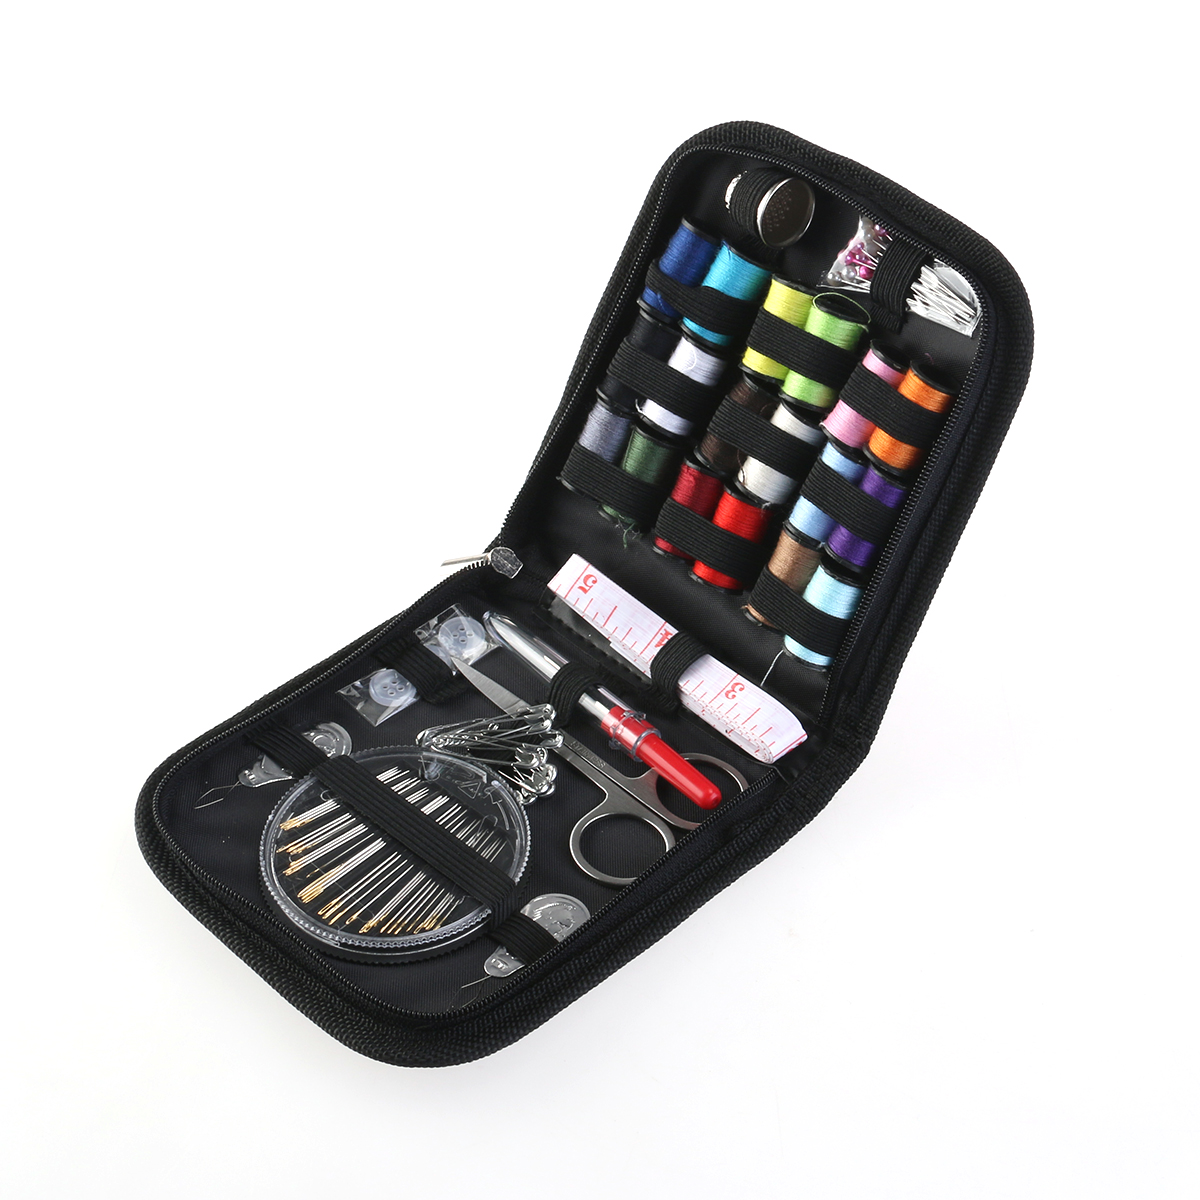 Travel Sewing Kit Needles Thread Scissors Set with Blue Zipper Bag Home Travel Campers Emergency Premium Gift, 58pcs Pack